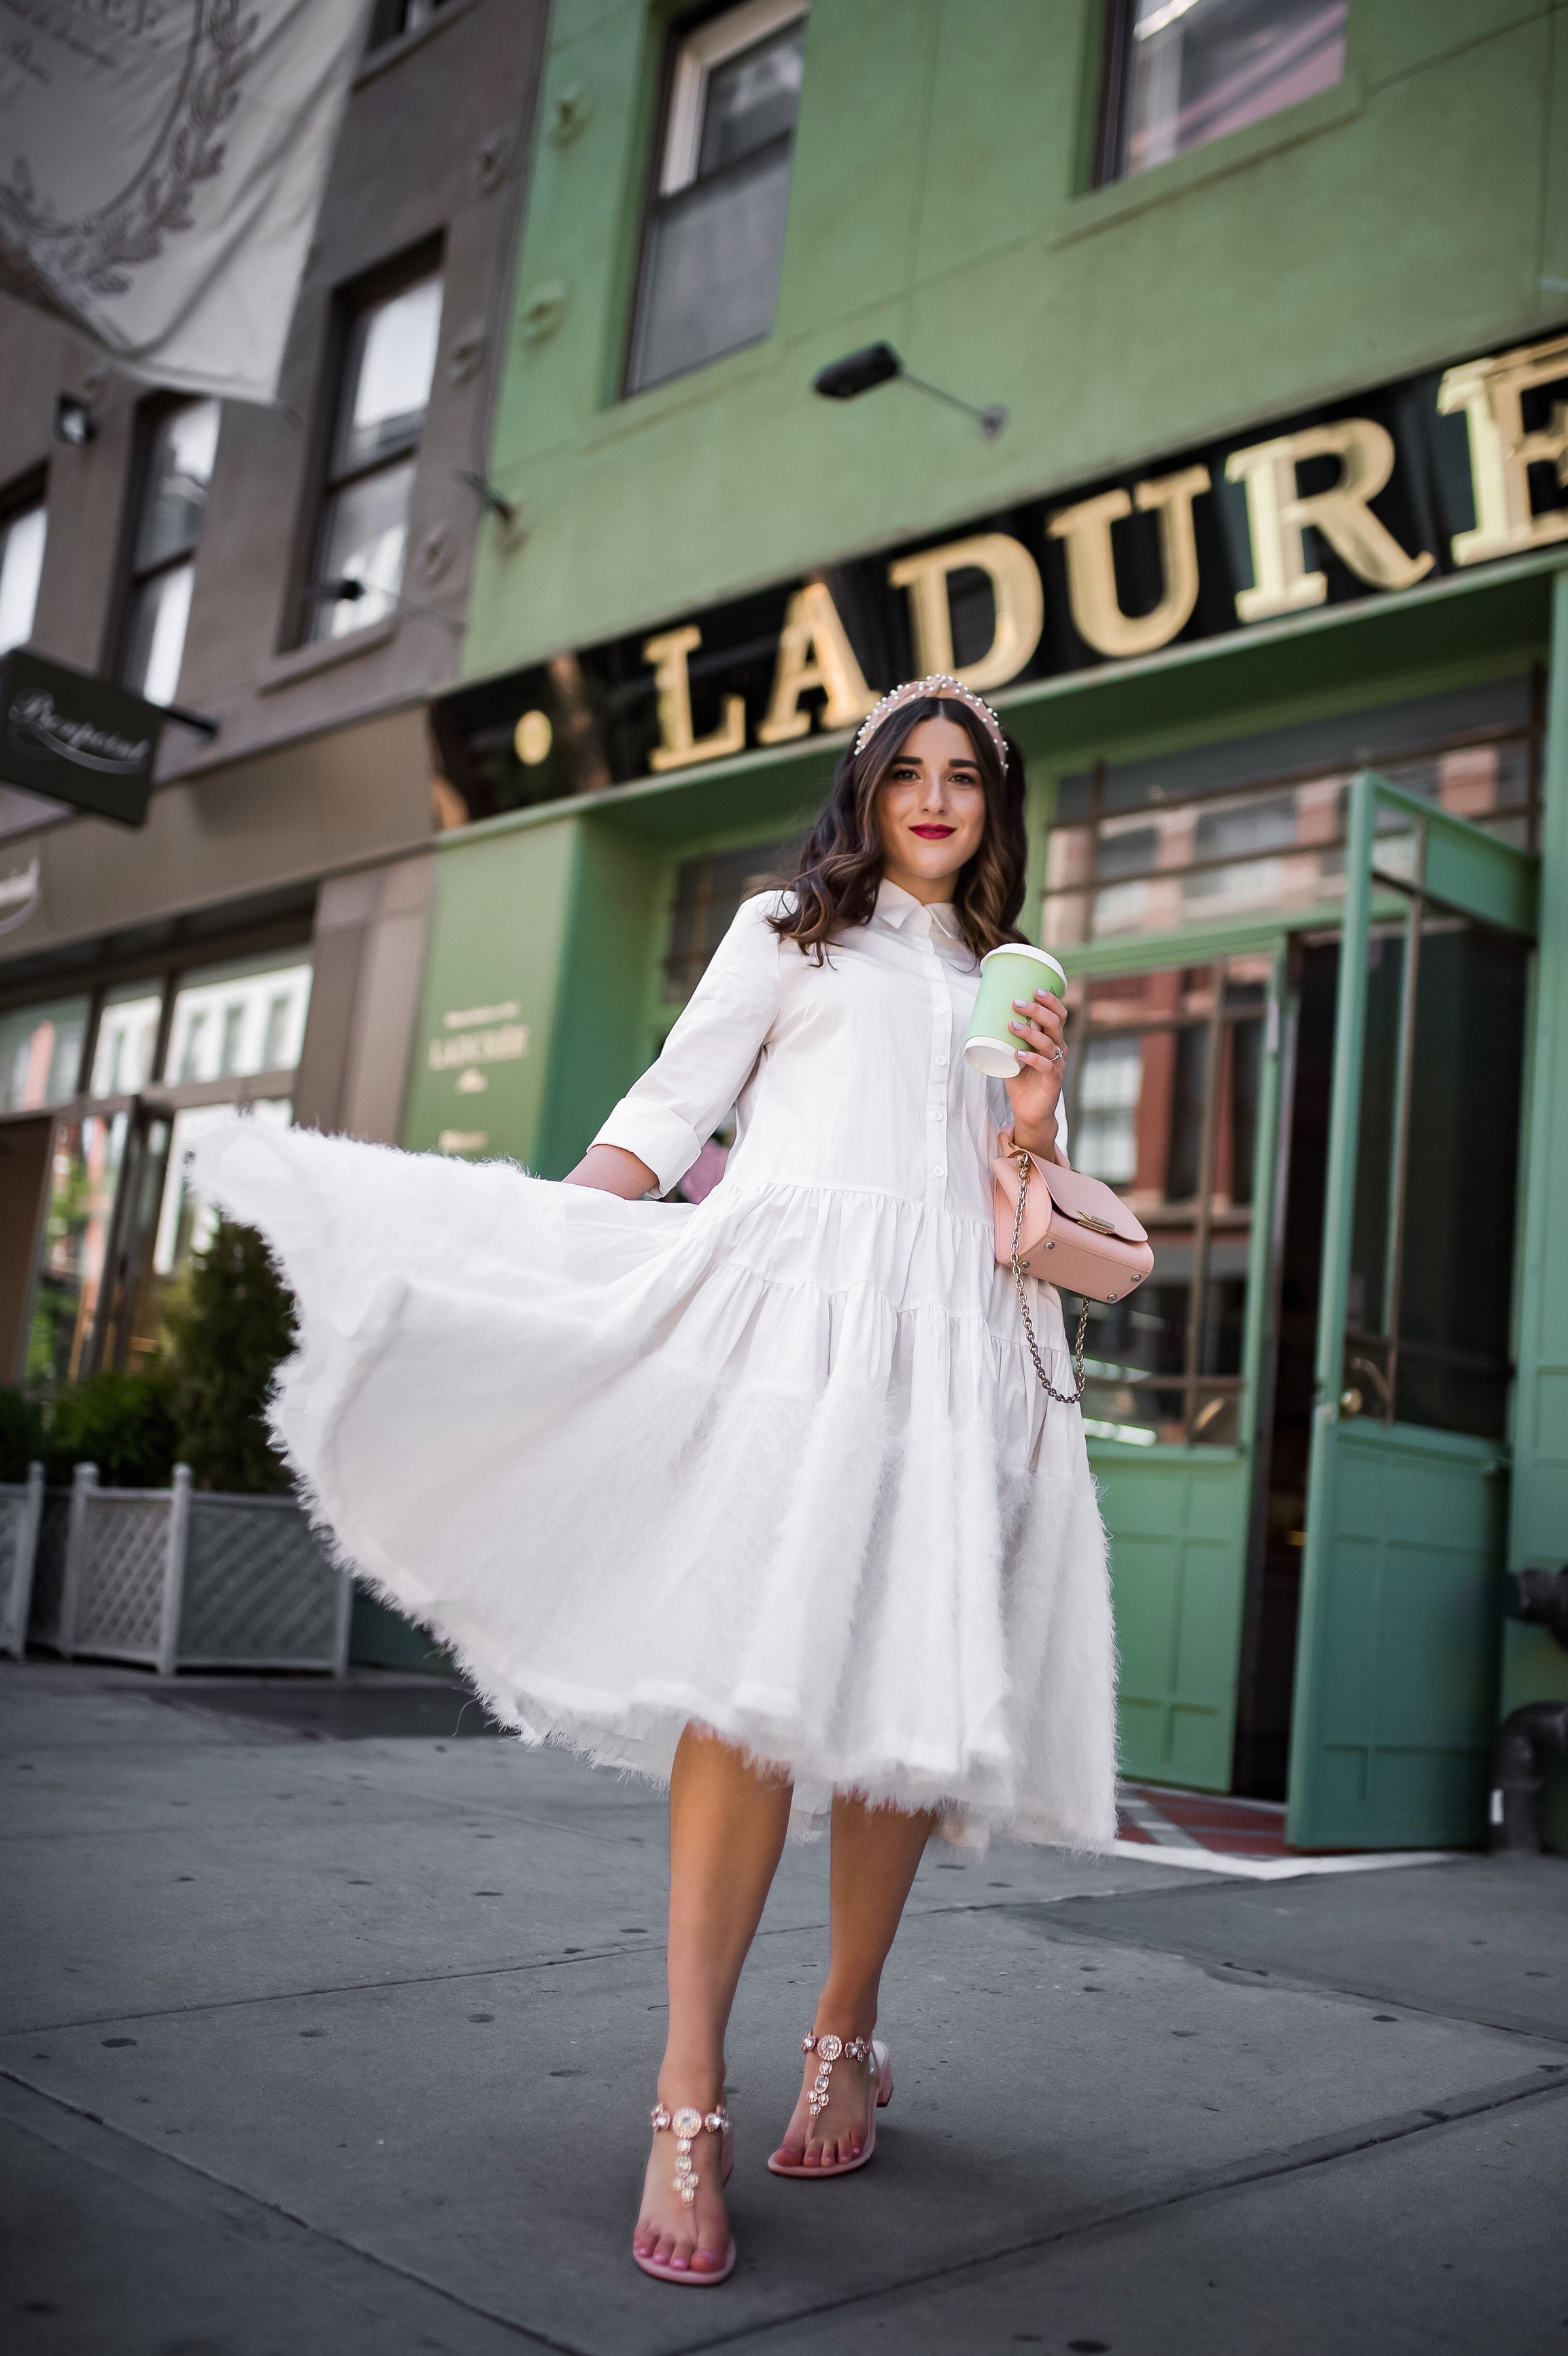 Debunking 8 Common Misconceptions About Fashion Bloggers White Midi Dress Pink Accessories Esther Santer Fashion Blog NYC Street Style Blogger Outfit OOTD Trendy Shopping Girl Headband How To Wear Pink Zac Posen Bag Jeweled Sandals La Duree Photoshoot.JPG